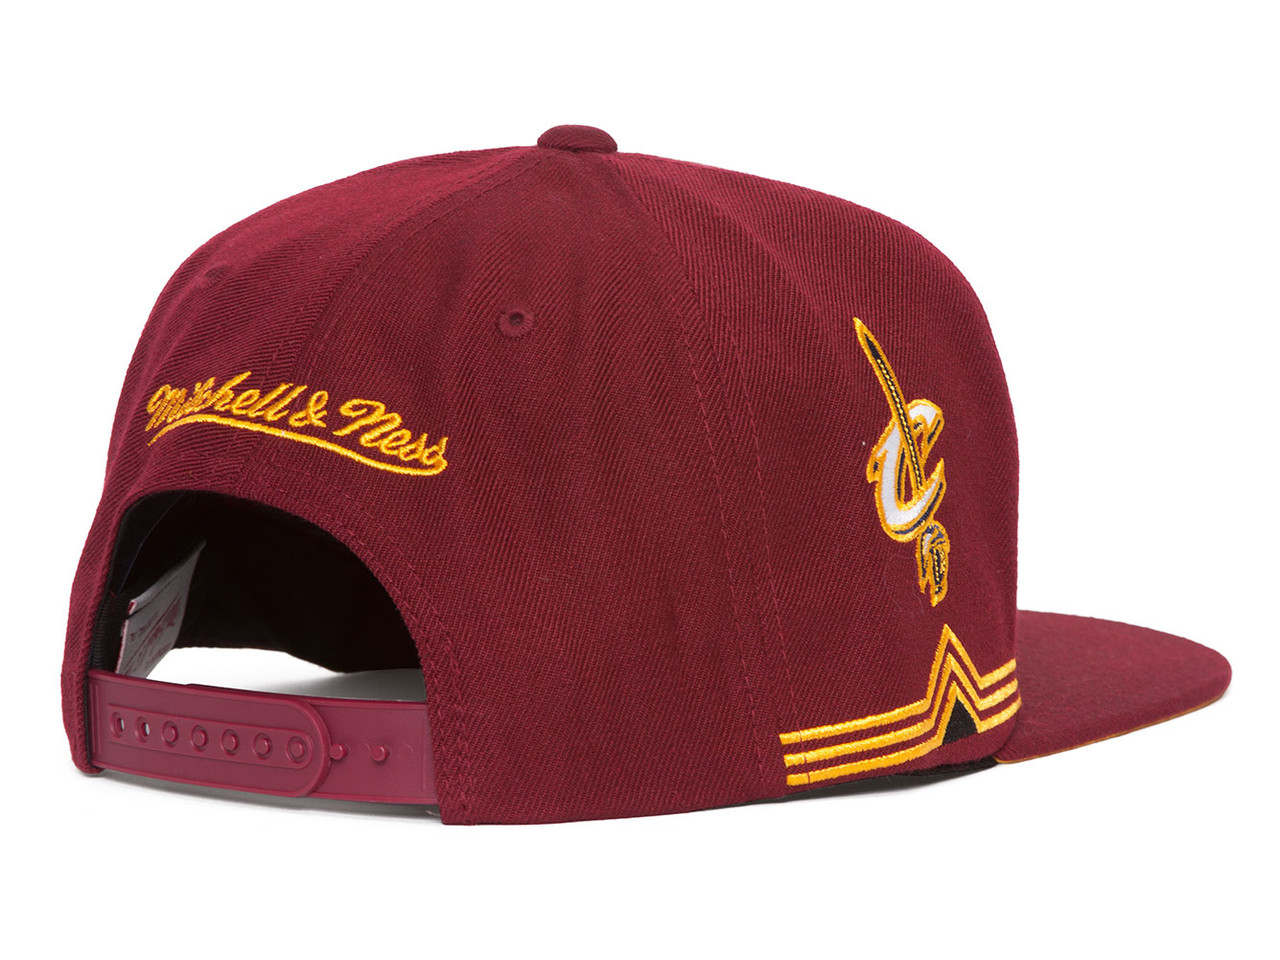 quality design f4464 271b2 Mitchell   Ness Cleveland Cavaliers Blank Front Short Hook Snapback - Gravity  Trading